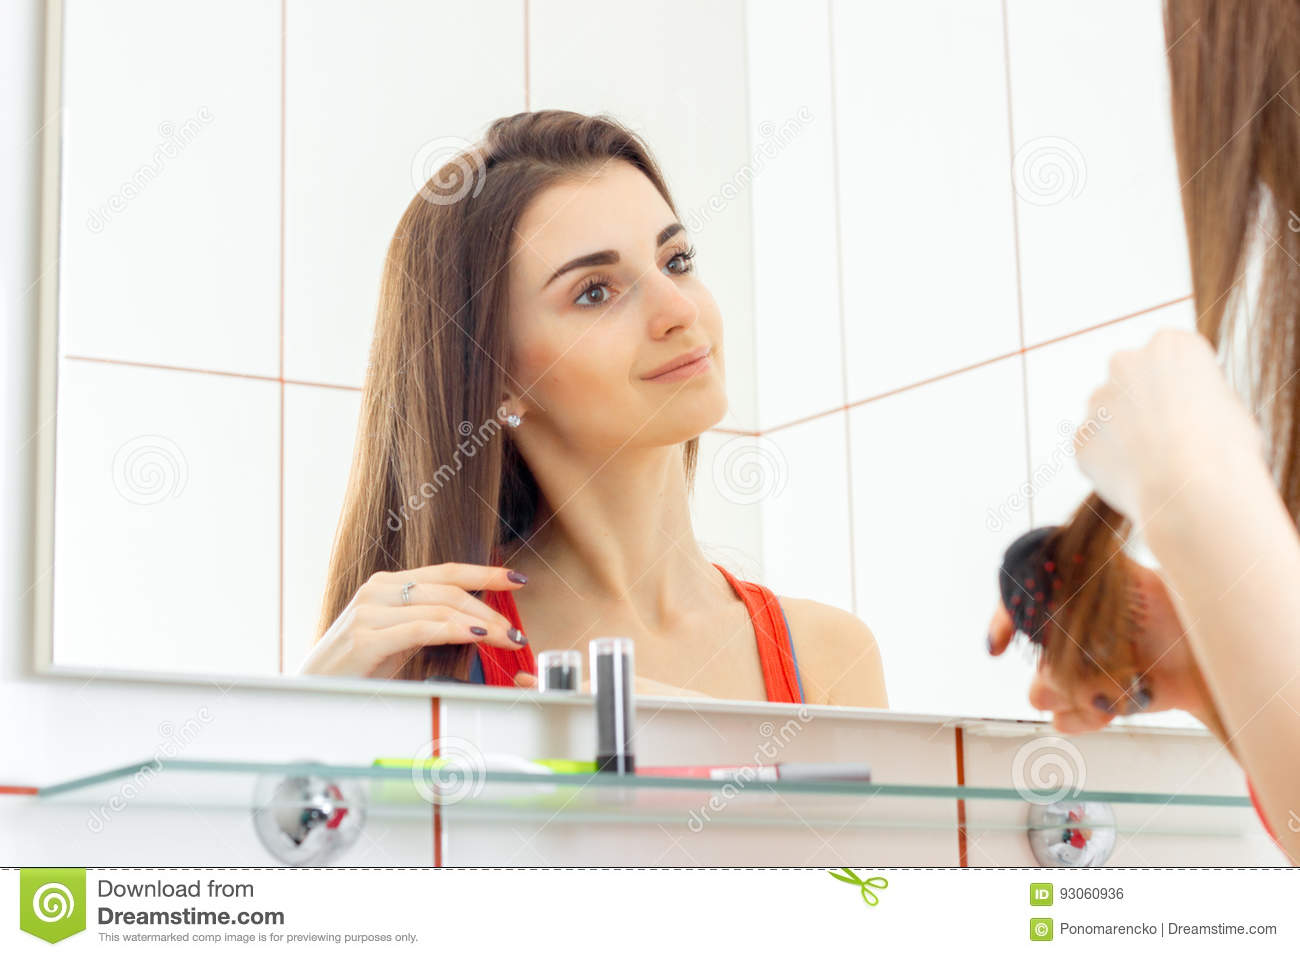 Cute Smiling Young Girl Stands In Front Of A Mirror And Combing Her